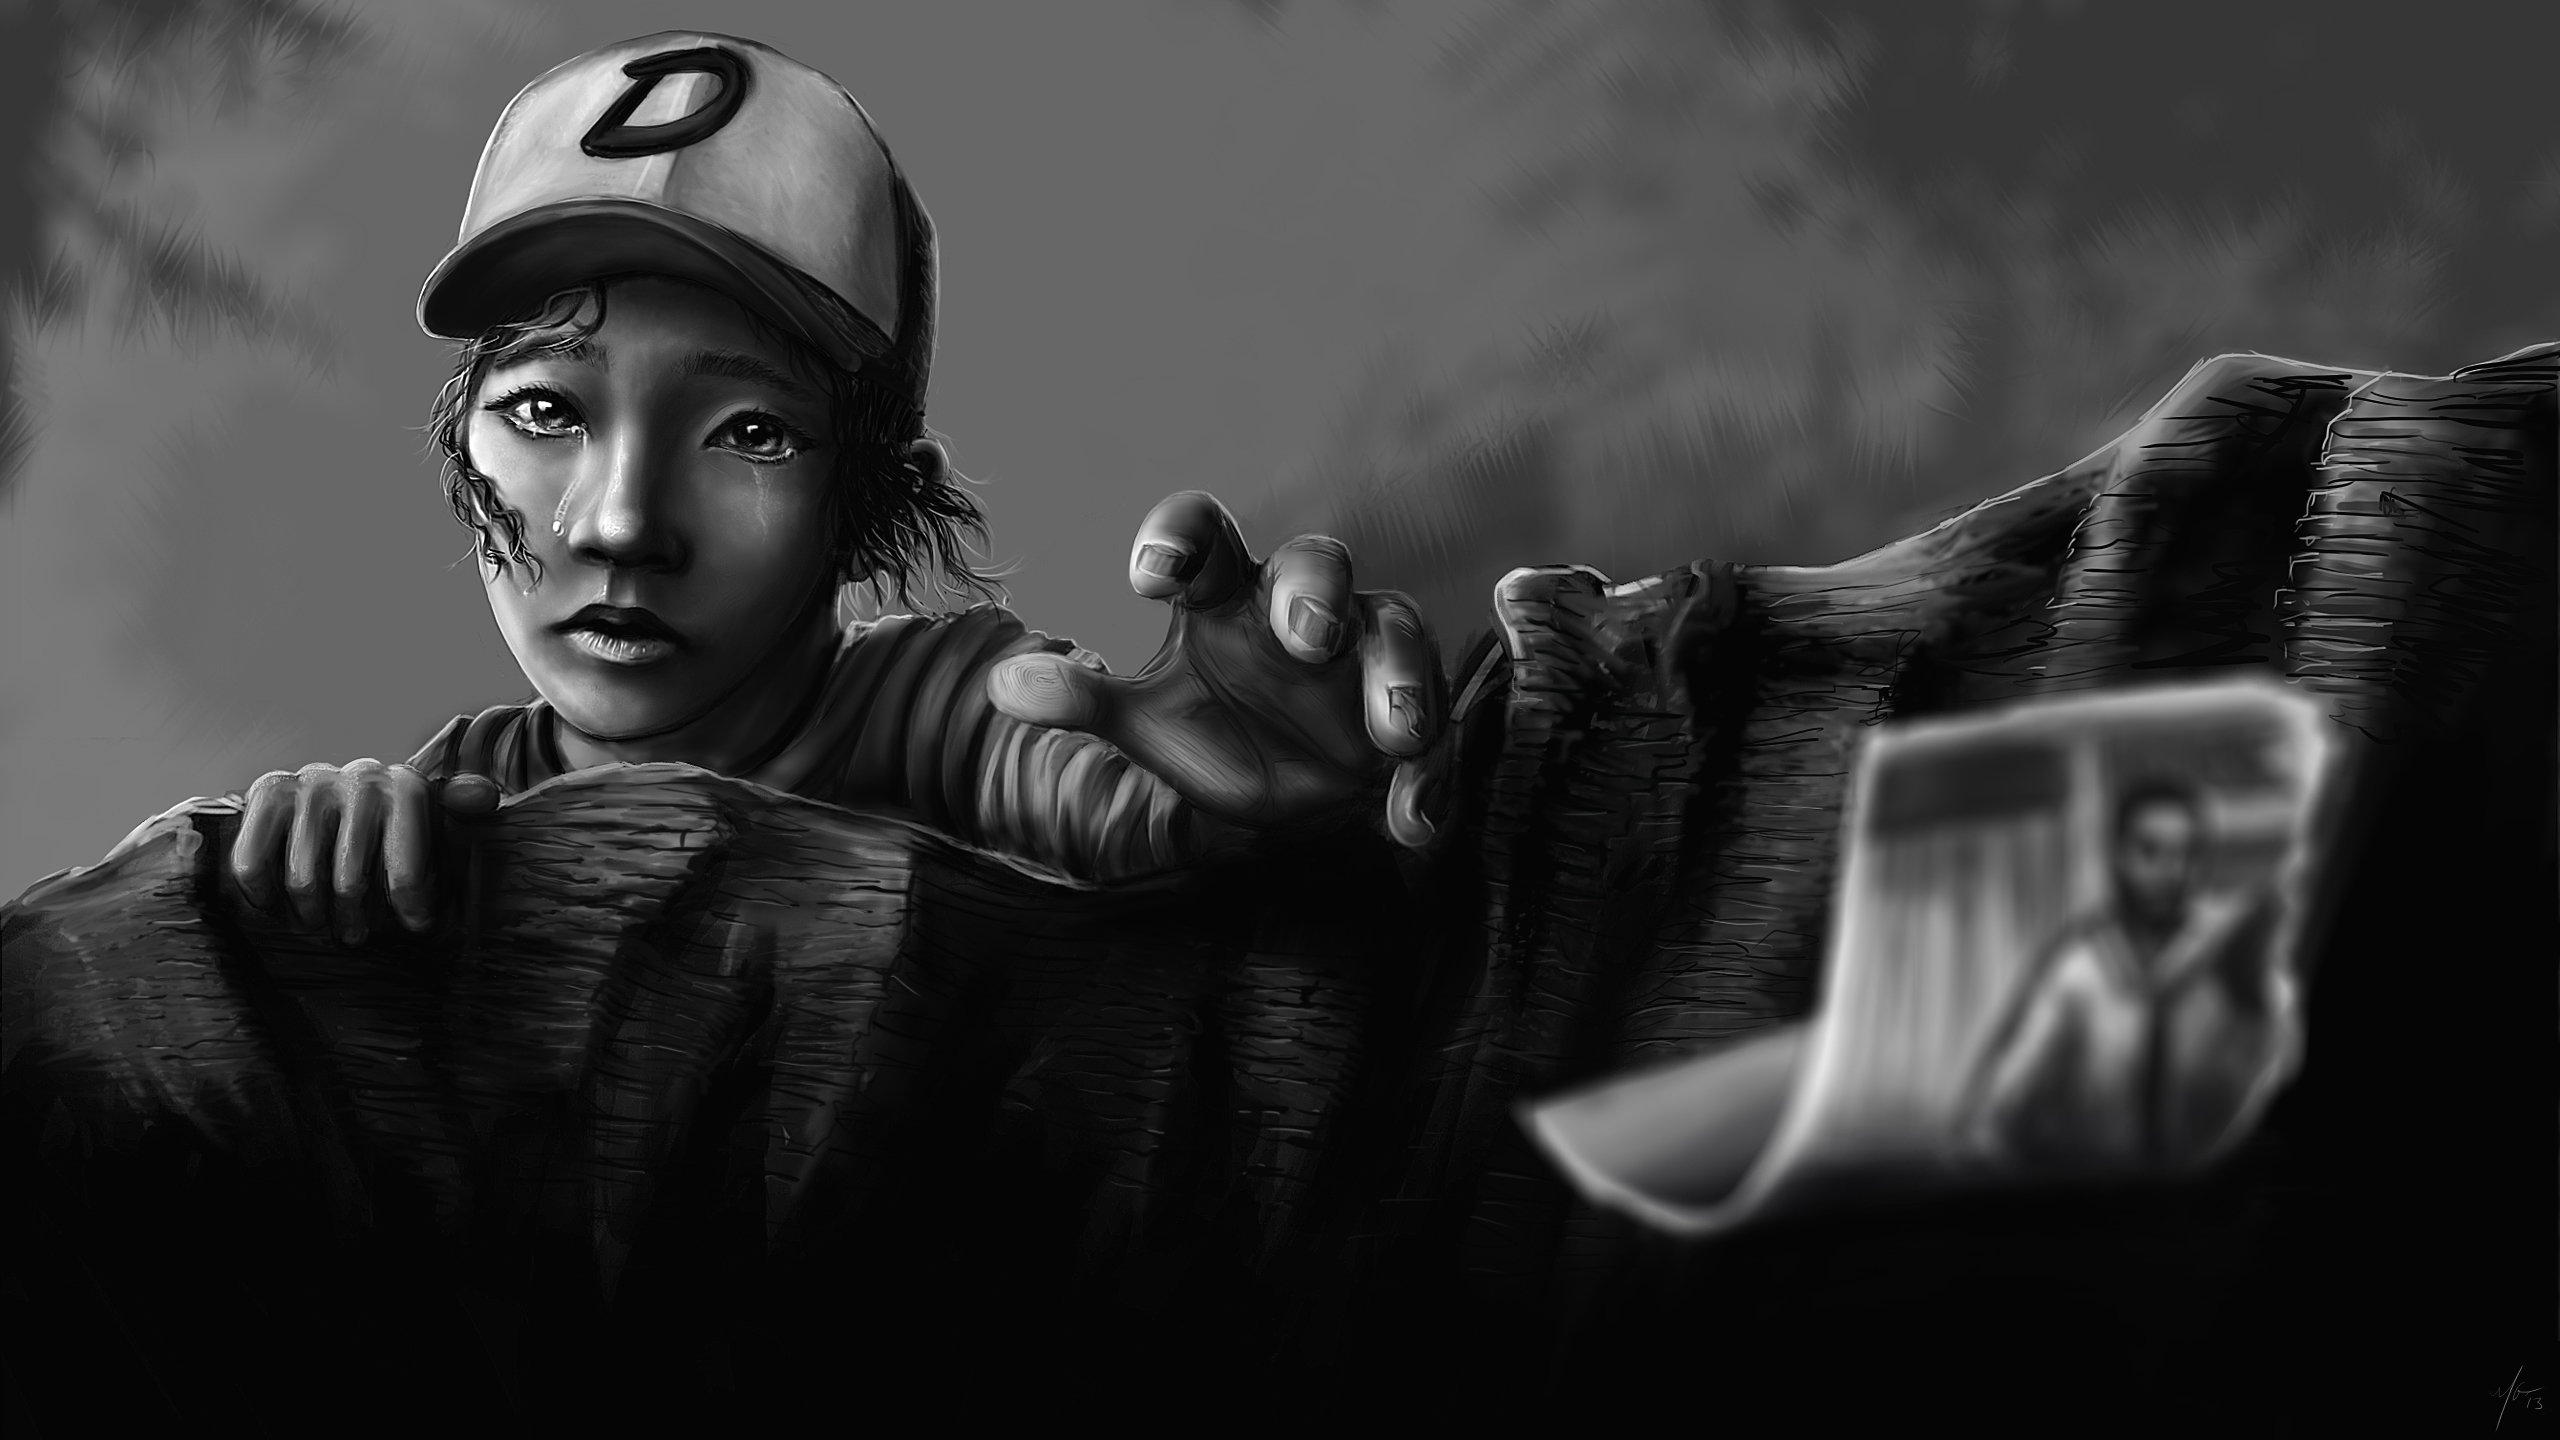 Clementine The Walking Dead Wallpapers Hd For Desktop